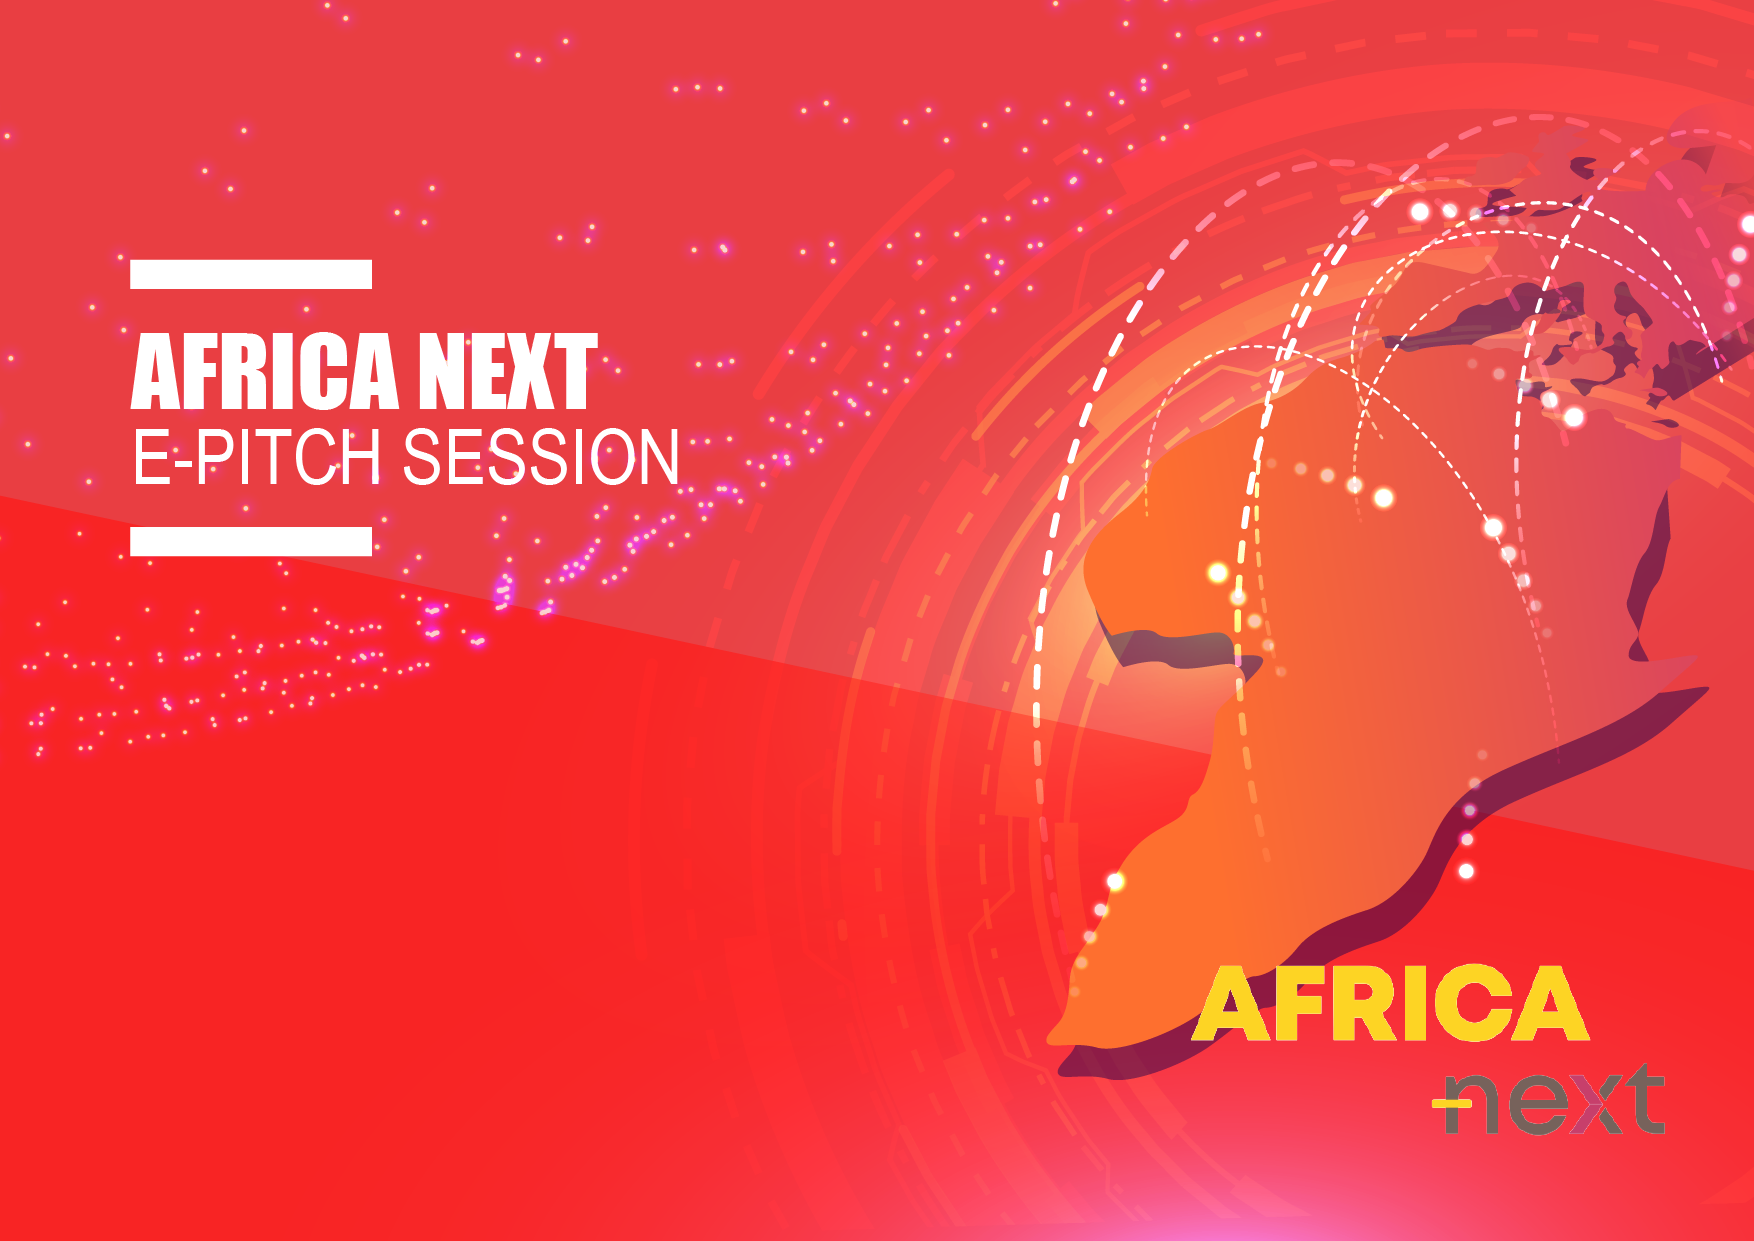 Join the first Africa Next e-pitching session! 3rd of November at 11:00 AM UTC +2